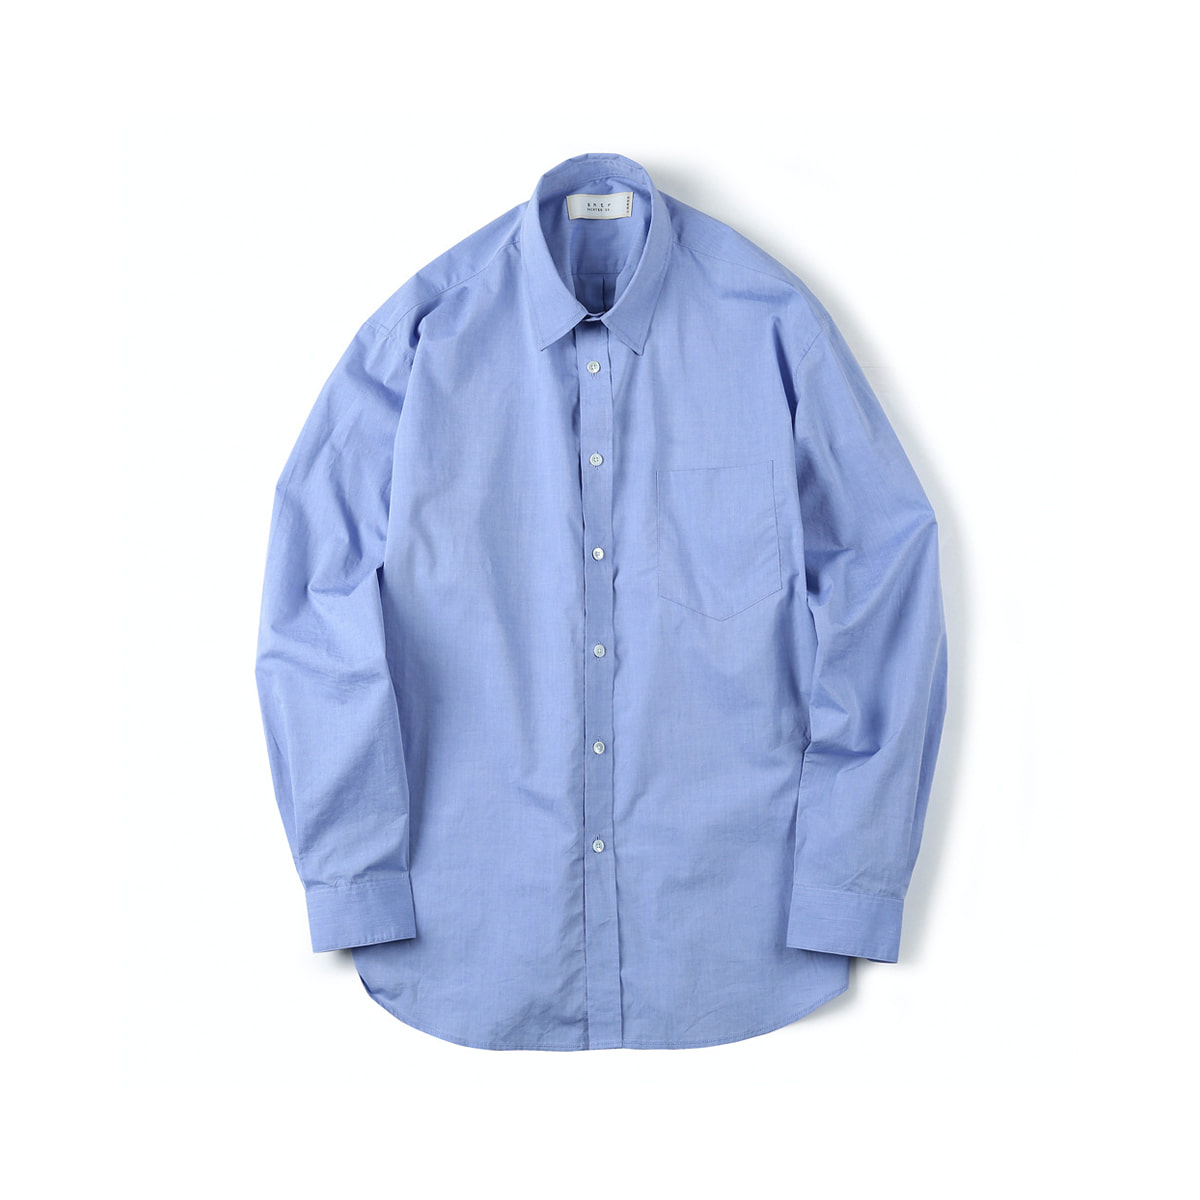 [SHIRTER] HIGH DENSITY STANDARD SHIRT 'BLUE'